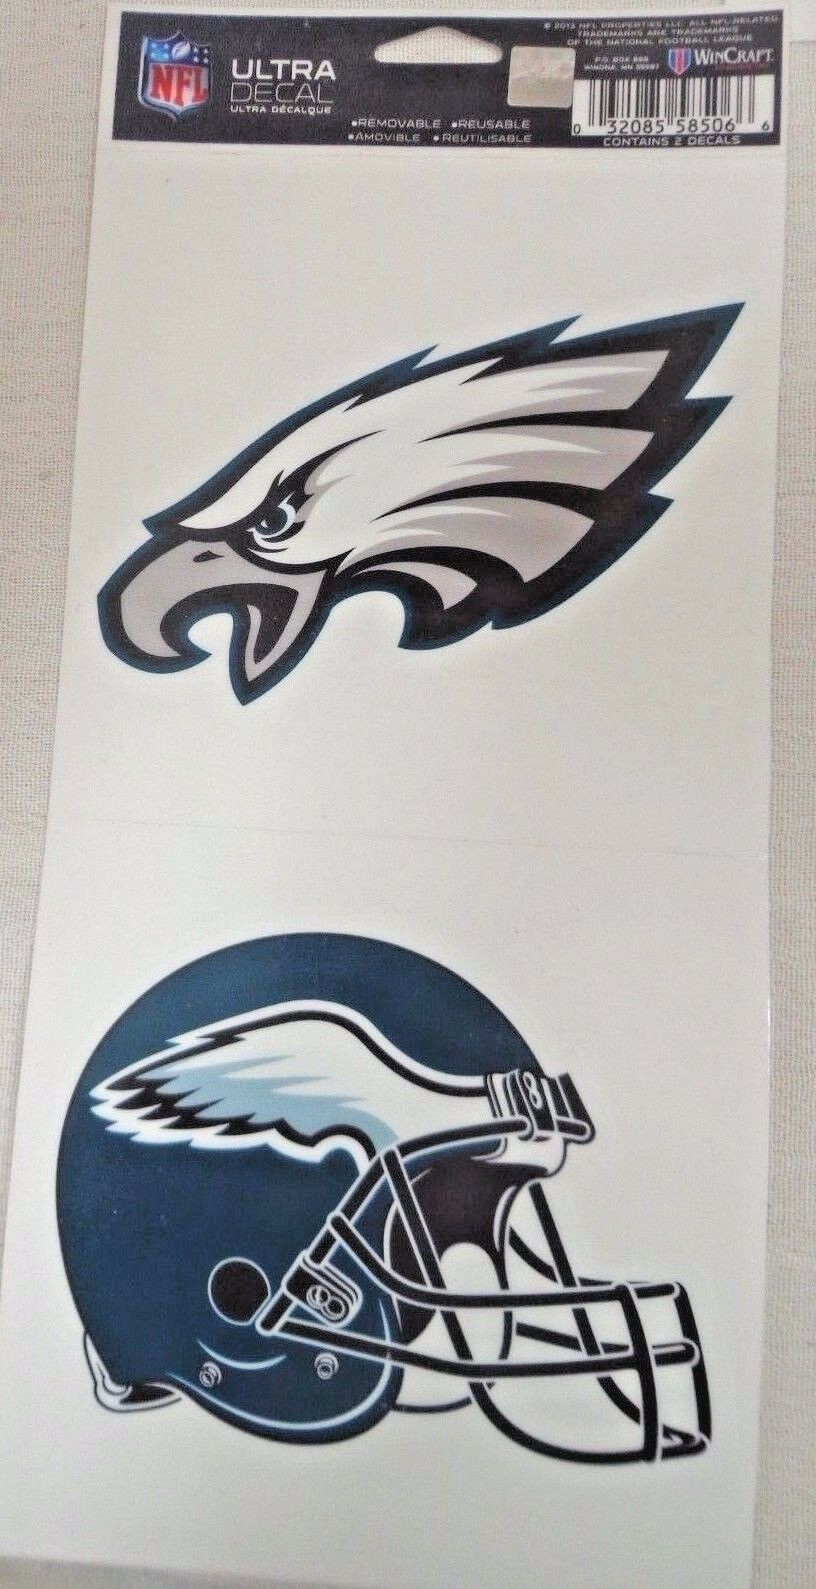 NFL Ultra Decals 2 Pack Set Removable Reusable Sticker Wincraft Philadelphia Eagles